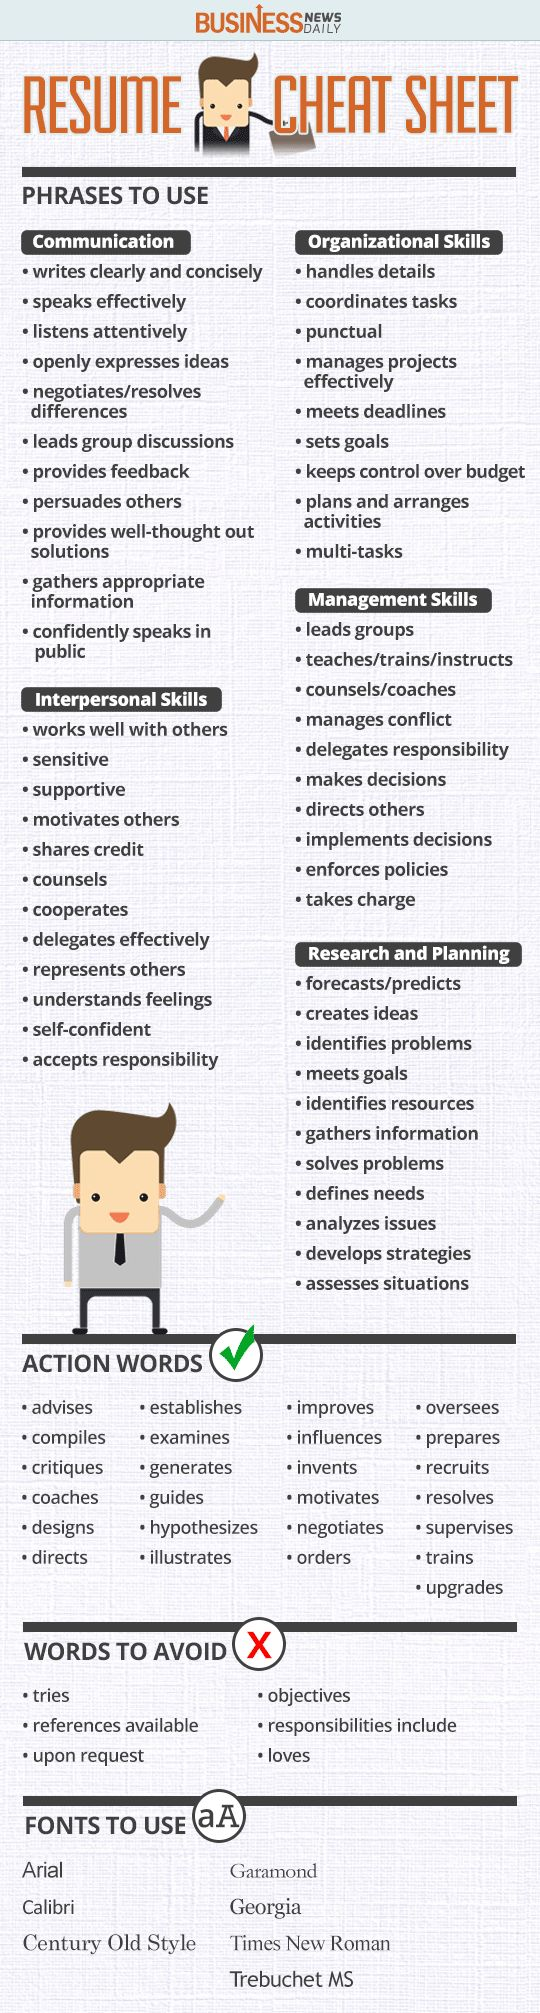 Opposenewapstandardsus  Pretty  Ideas About Resume On Pinterest  Cv Format Resume Cv And  With Fair Resume Cheat Sheet Infographic Andrews Almost Done With A Complete Unit On Employment Which With Appealing Resume Cum Laude Also Linkedin Resume Search In Addition Computer Science Resumes And Resume Goal Statement As Well As Legal Resume Format Additionally Help Resume From Pinterestcom With Opposenewapstandardsus  Fair  Ideas About Resume On Pinterest  Cv Format Resume Cv And  With Appealing Resume Cheat Sheet Infographic Andrews Almost Done With A Complete Unit On Employment Which And Pretty Resume Cum Laude Also Linkedin Resume Search In Addition Computer Science Resumes From Pinterestcom